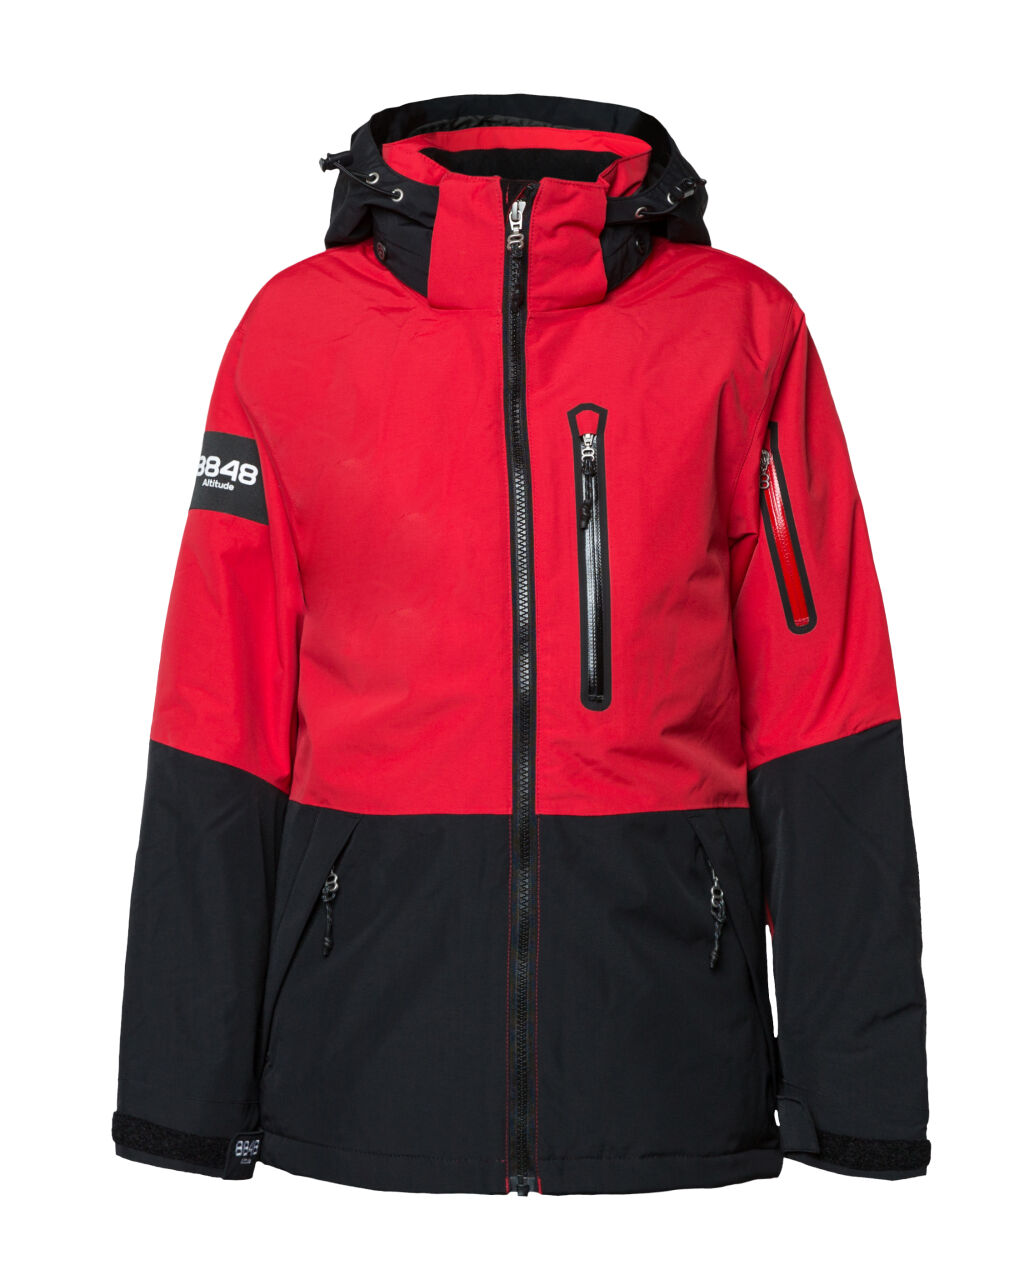 8848 Altitude Kaman Jacket Jr